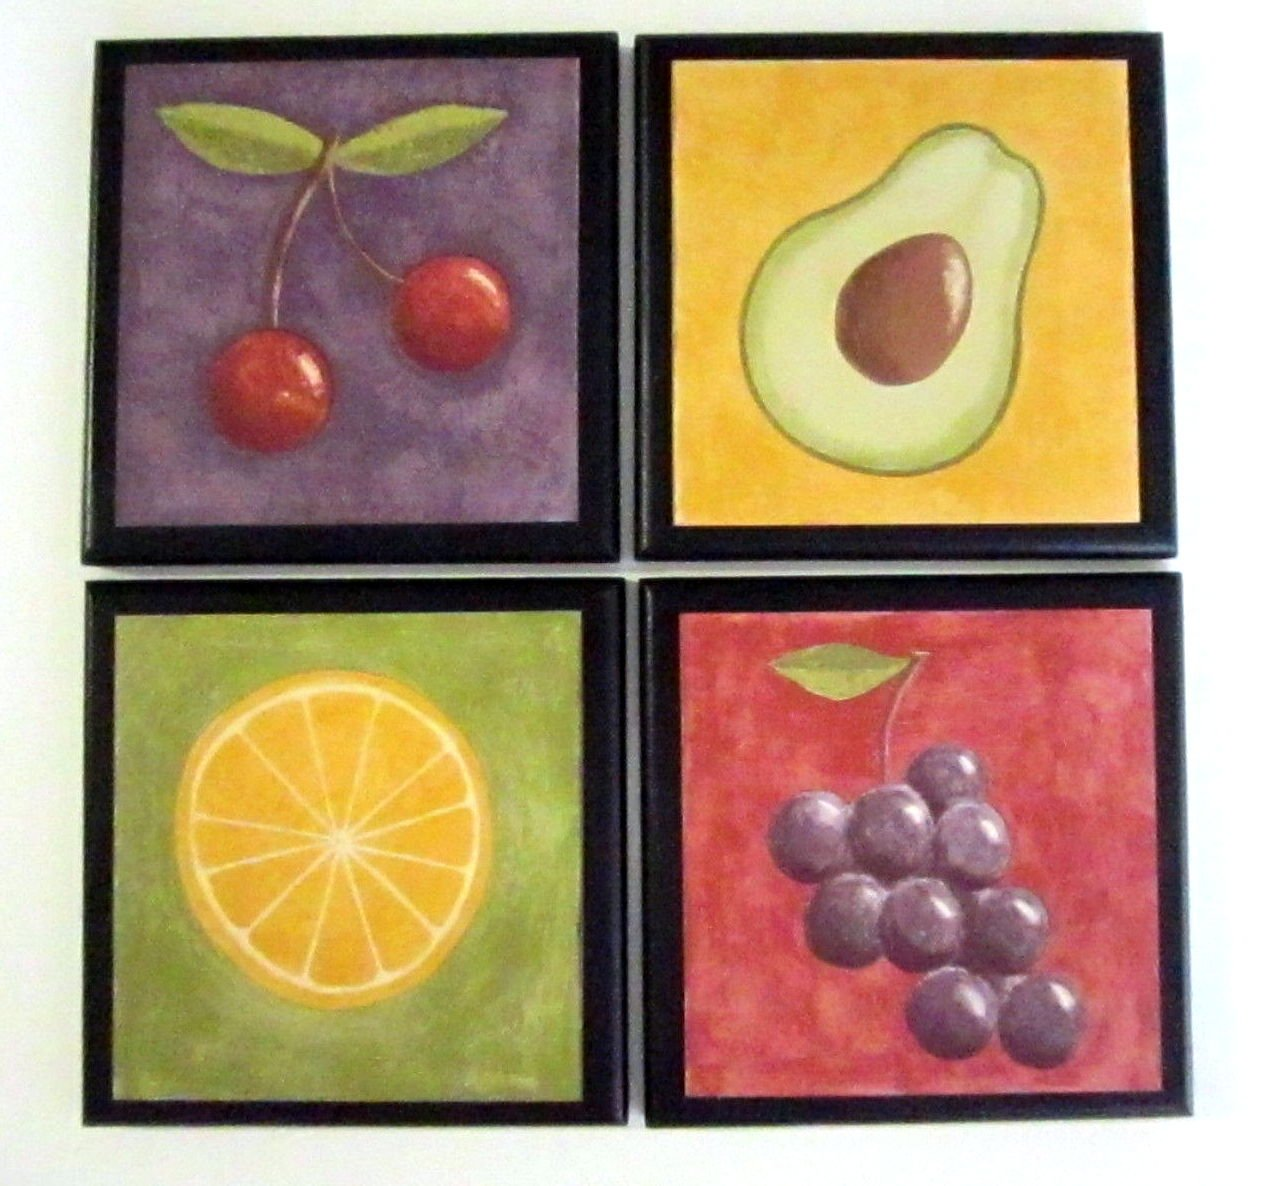 Fruit Wall Decor Plaques - Set of 4 Bright Modern Style Kitchen Signs